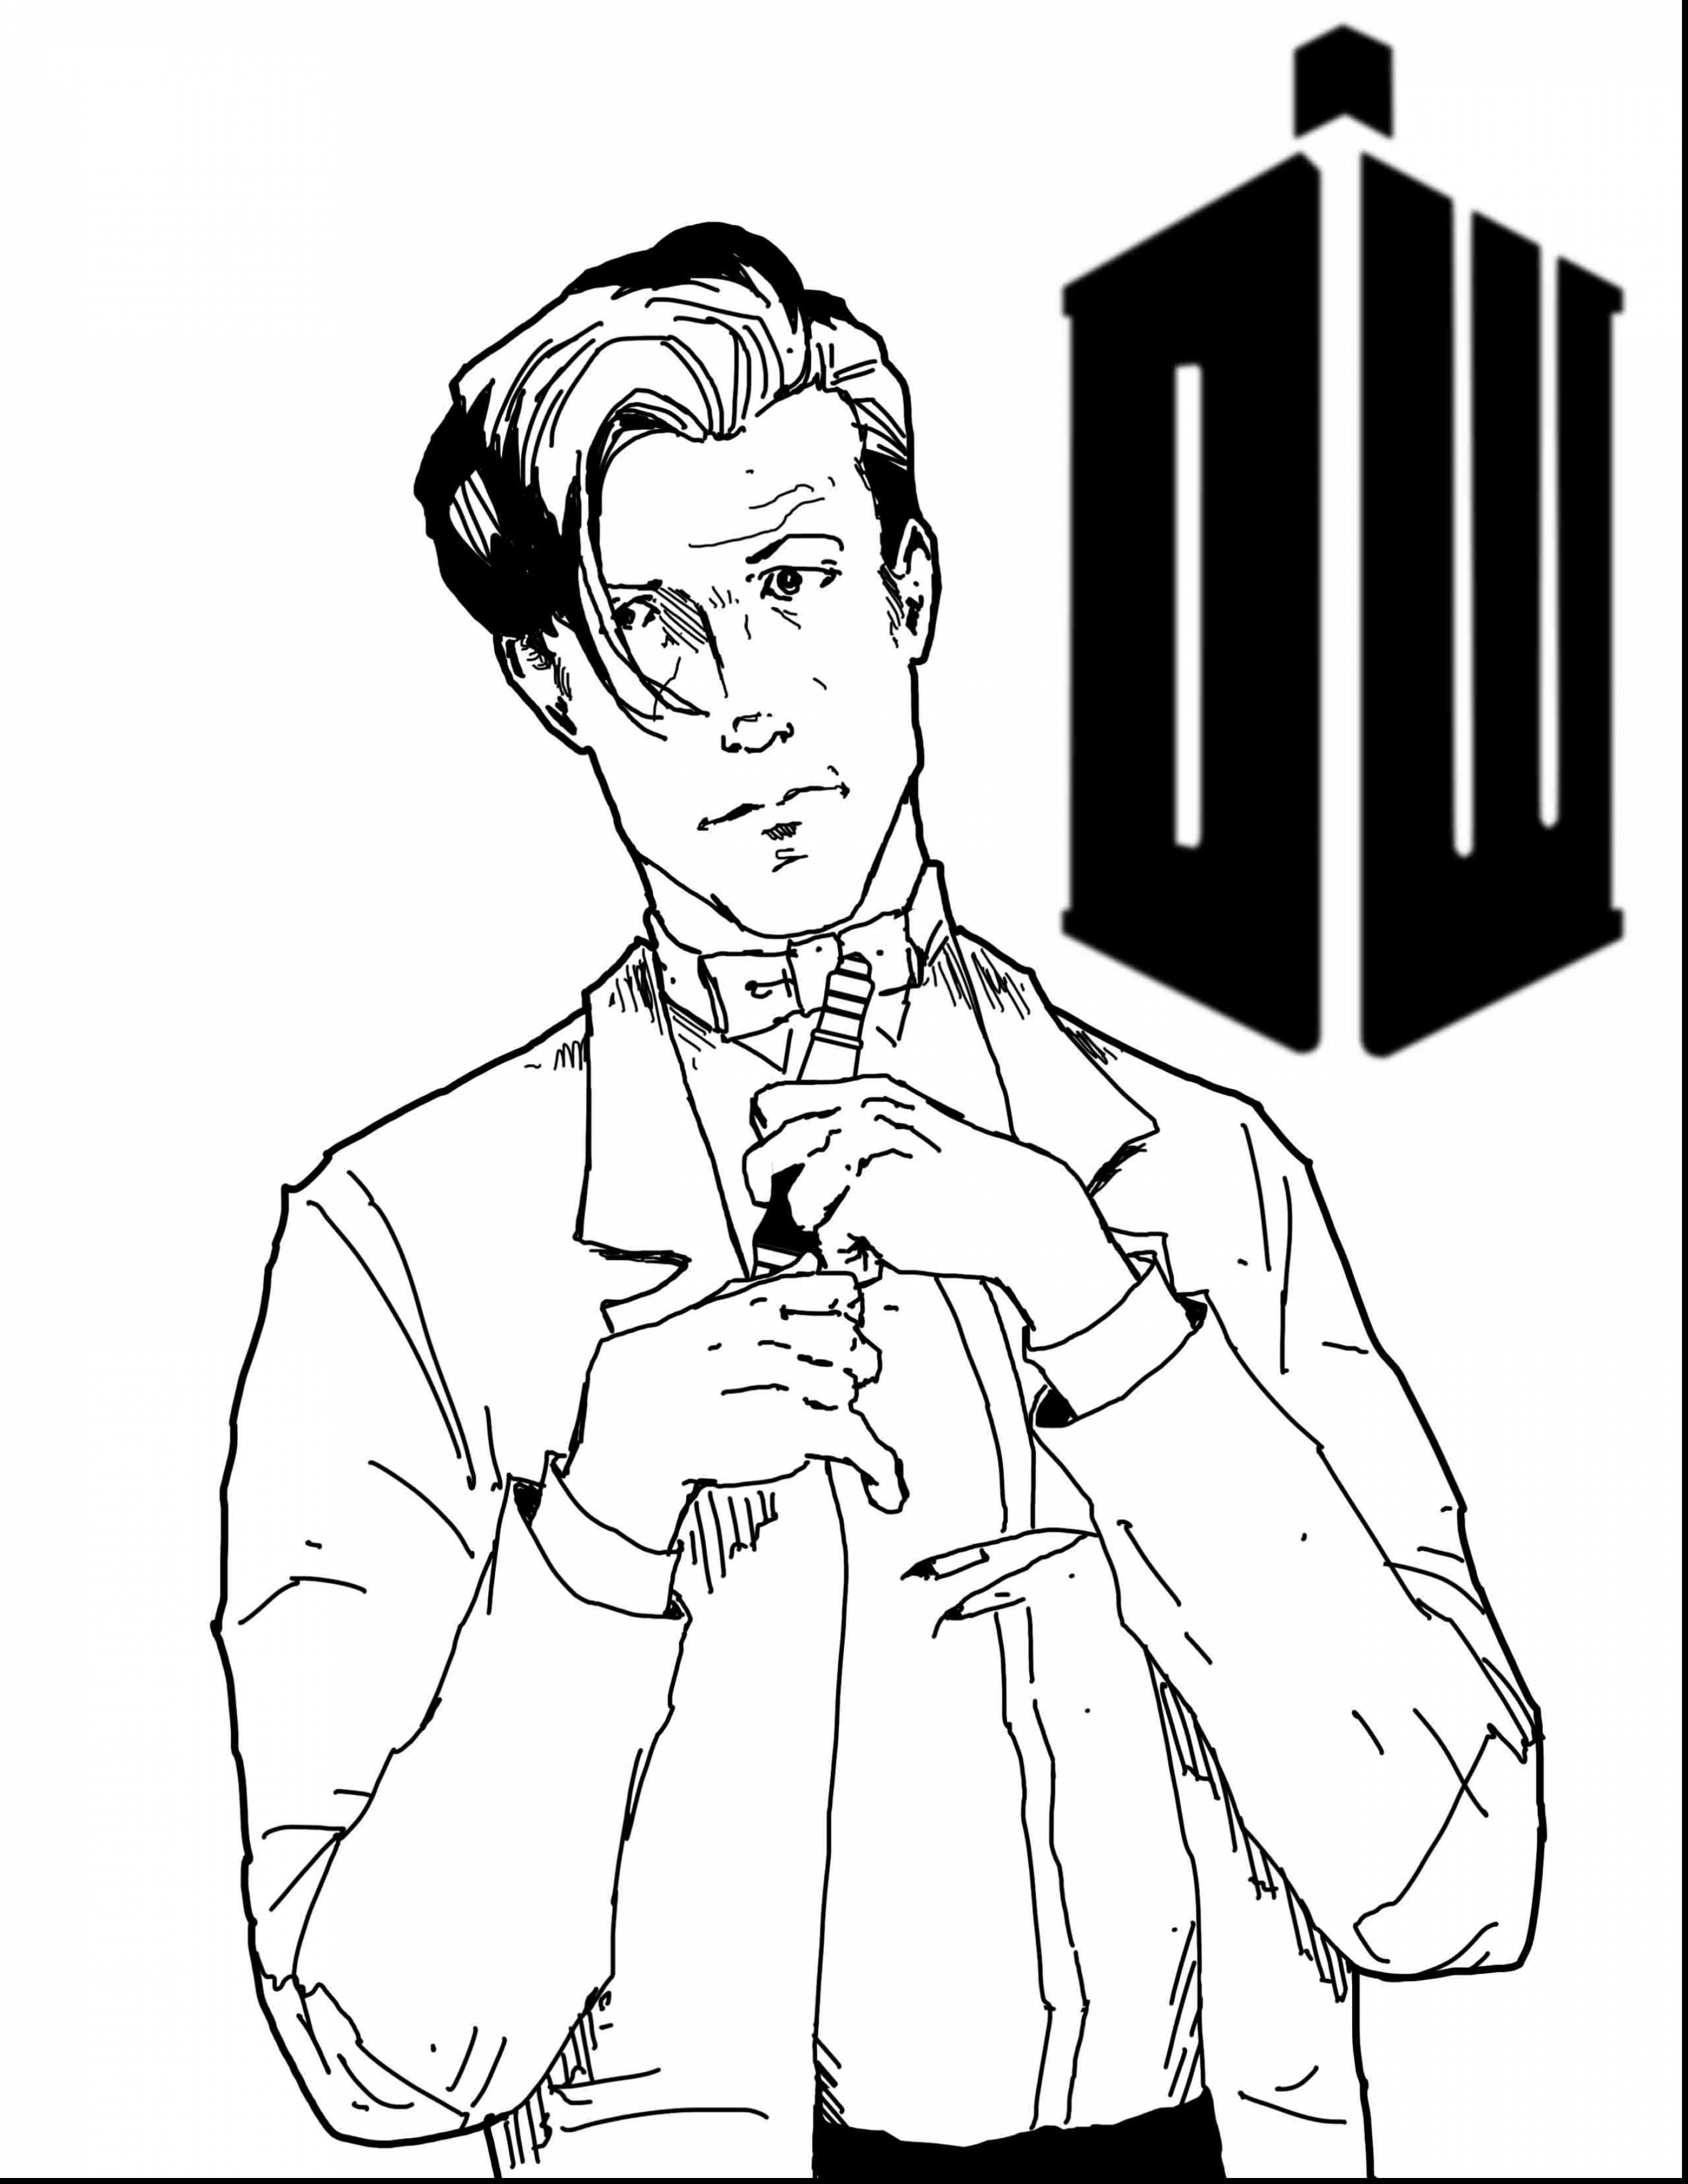 Doctor Who Tardis Coloring Pages at GetDrawings.com | Free for ...